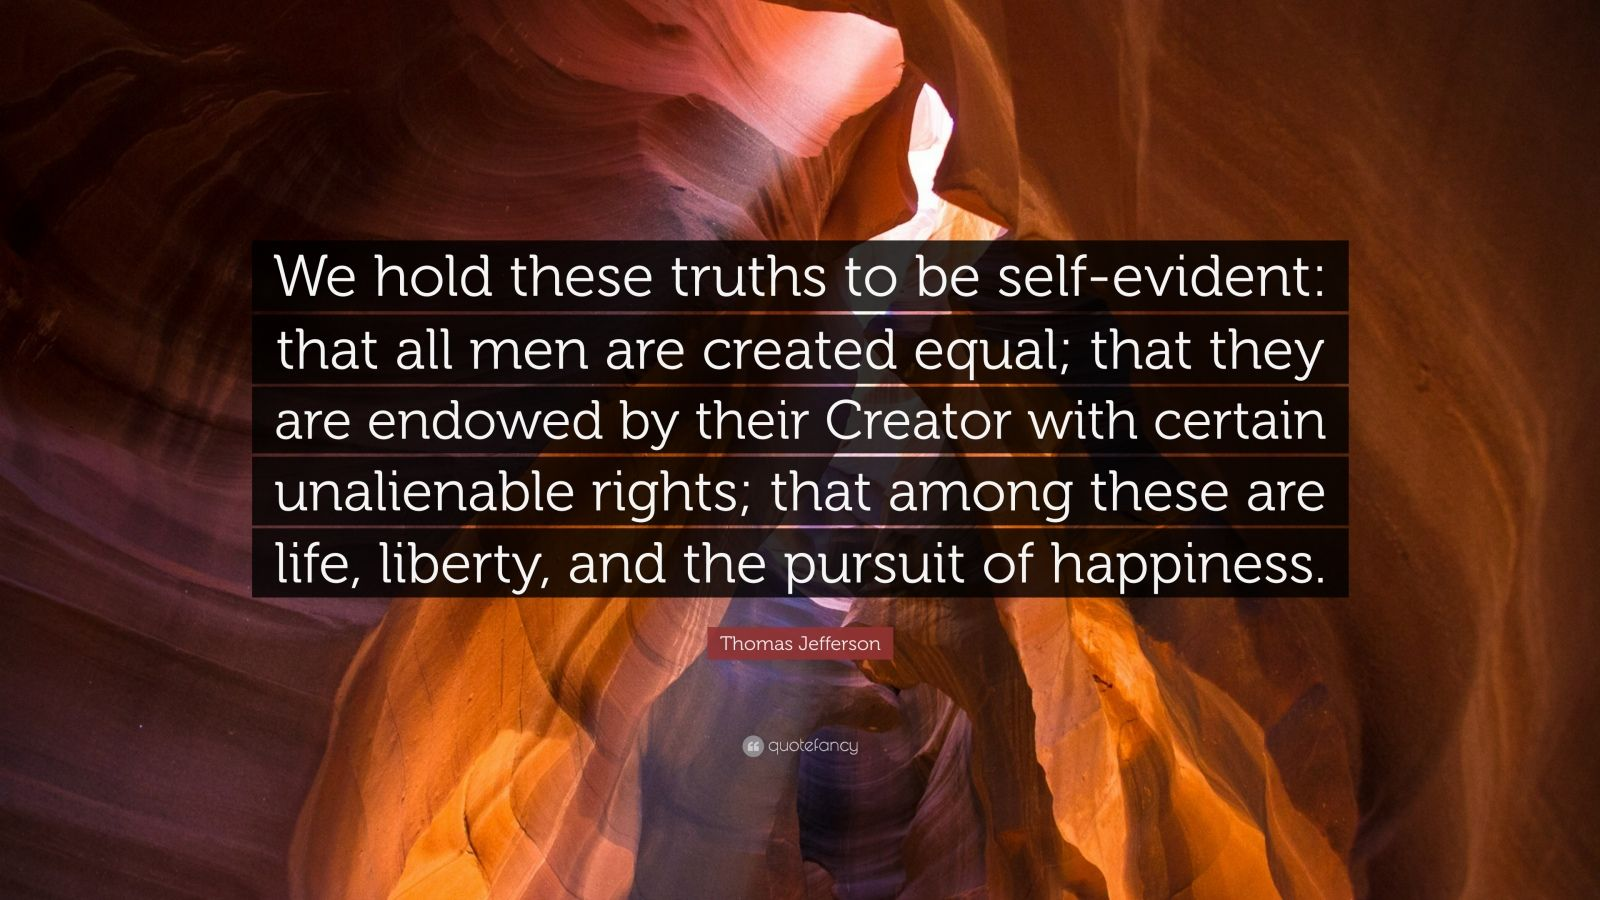 """Thomas Jefferson Quote: """"We hold these truths to be self-evident: that all men are created equal; that they are endowed by their Creator with certain unalienable rights; that among these are life, liberty, and the pursuit of happiness."""""""